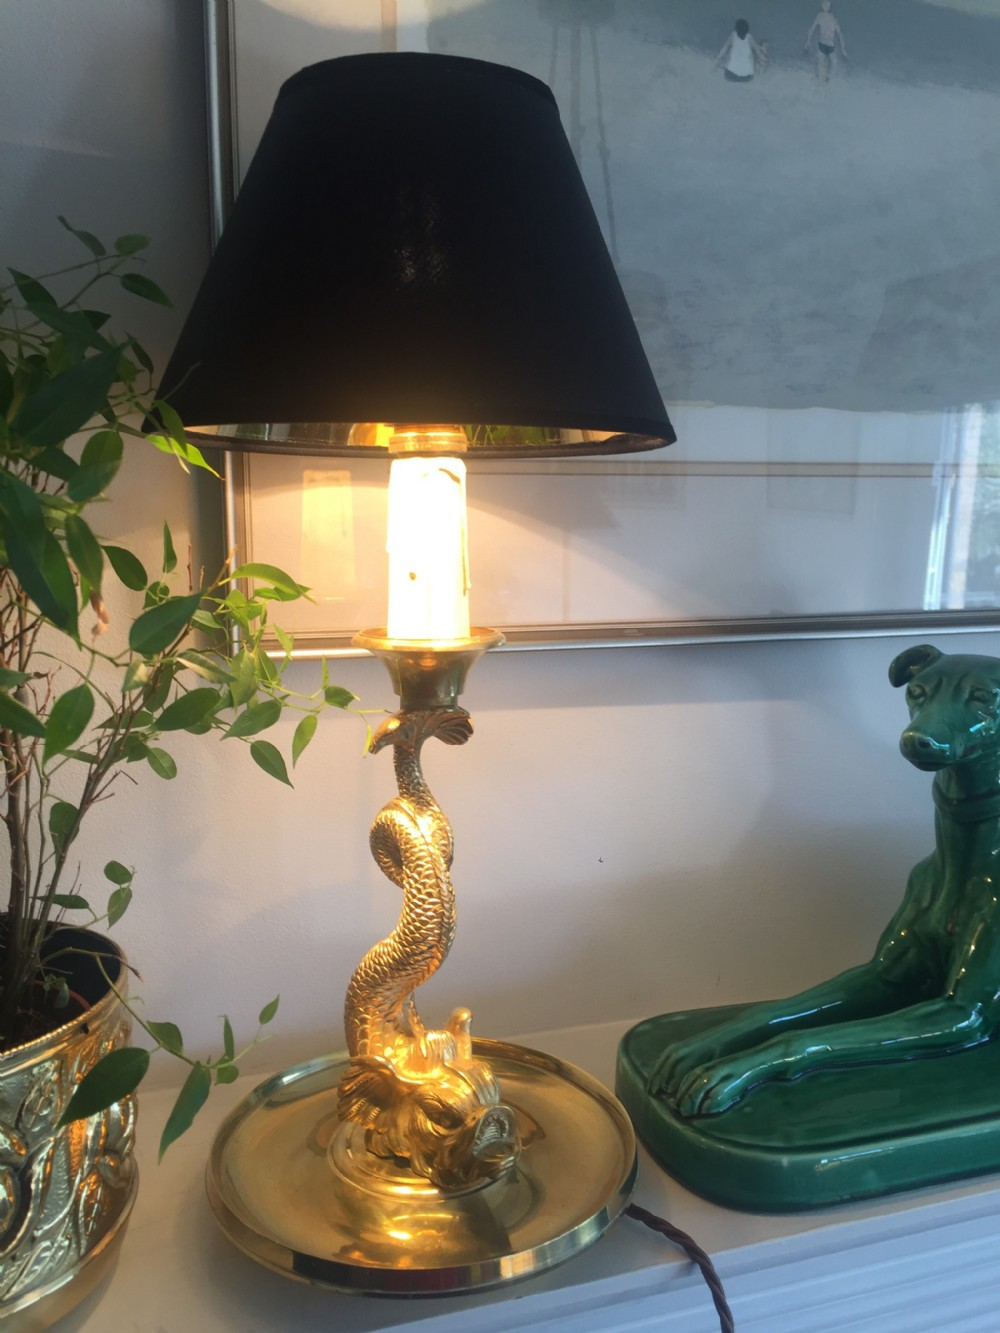 napoleon iii dolphin desk consol lamp in bronze